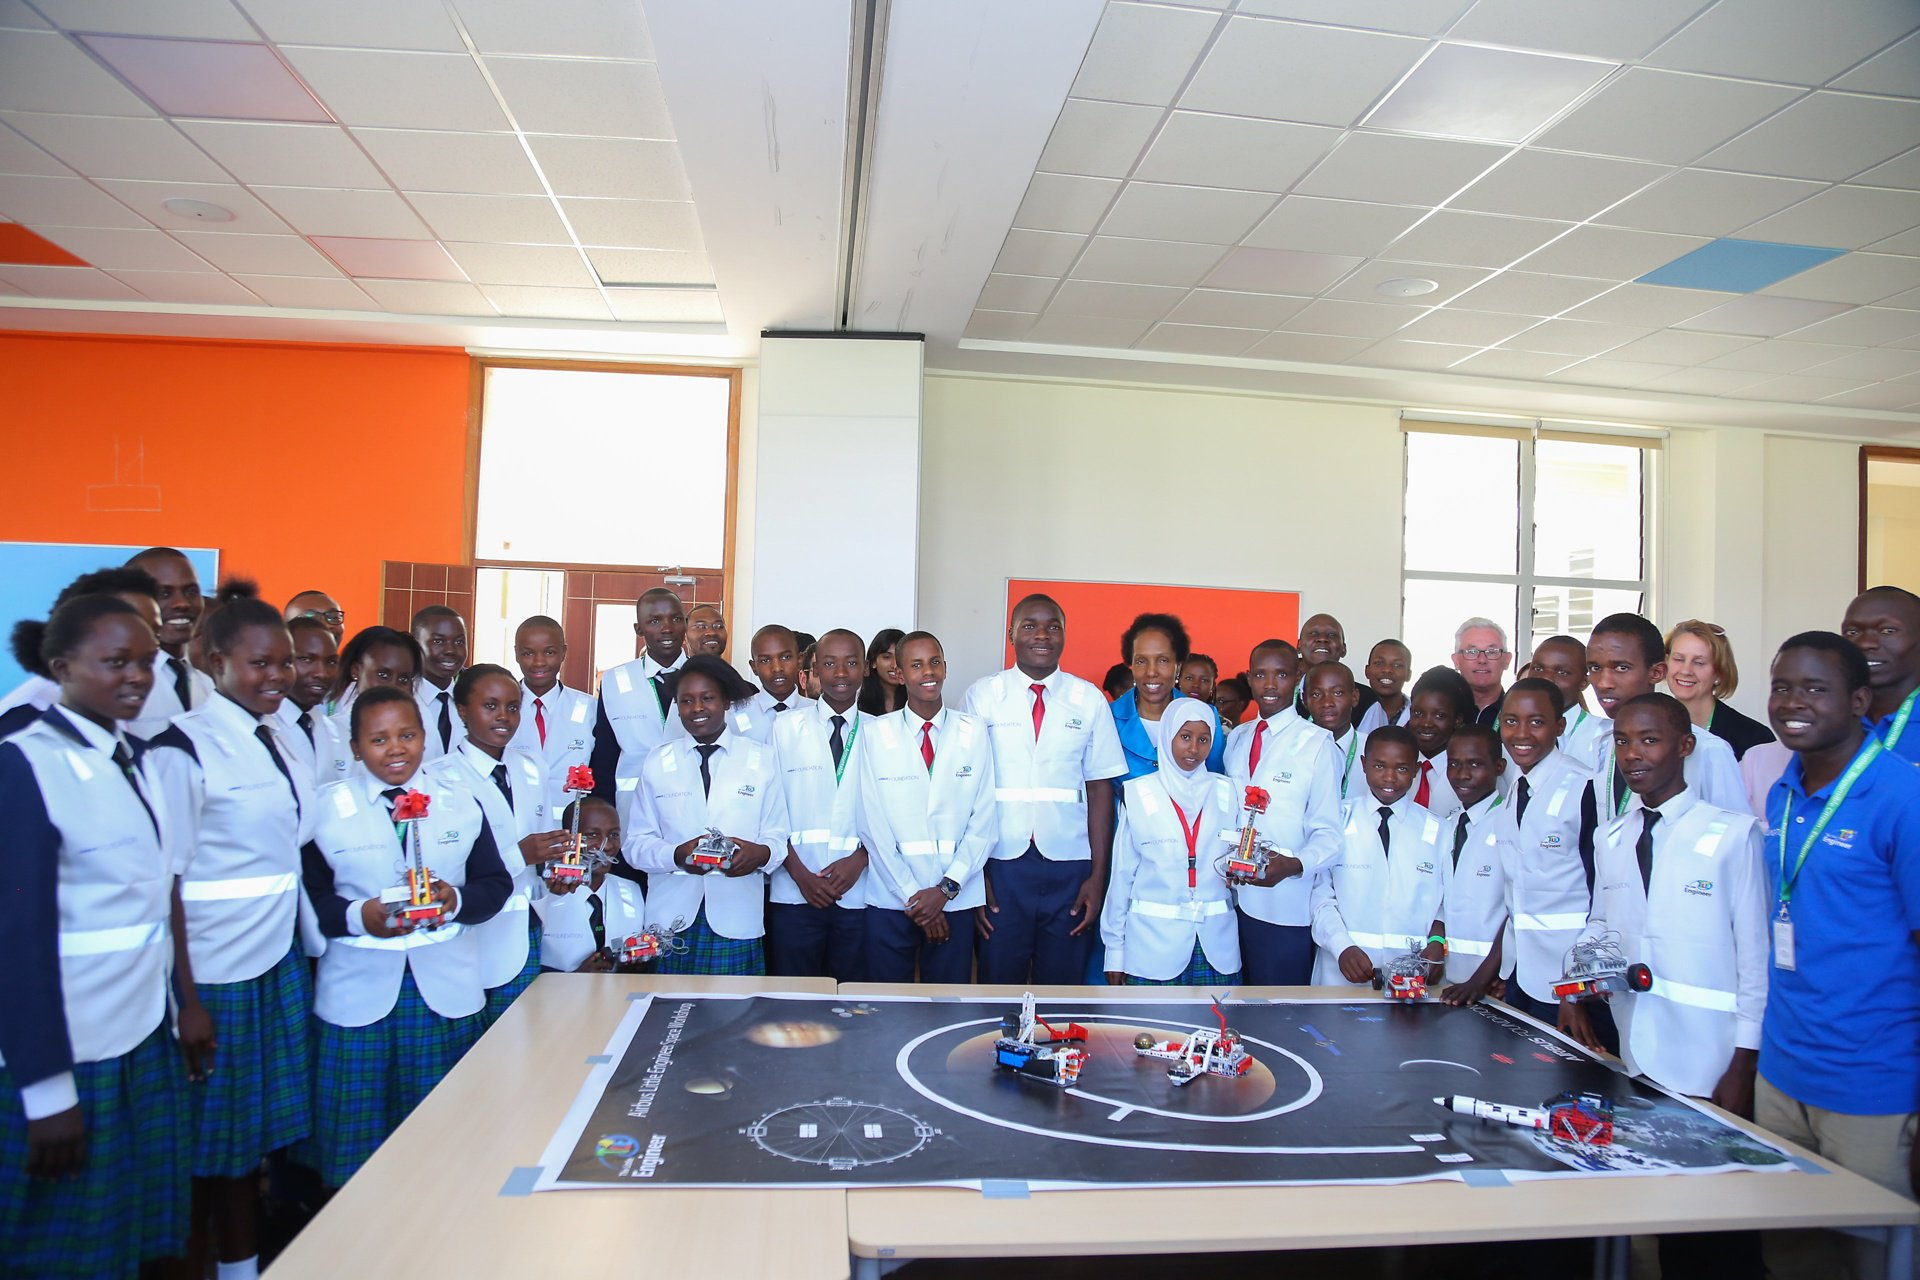 The workshop challenged close to 30 Kenyan students to carry out a simulation of a launch mission to space